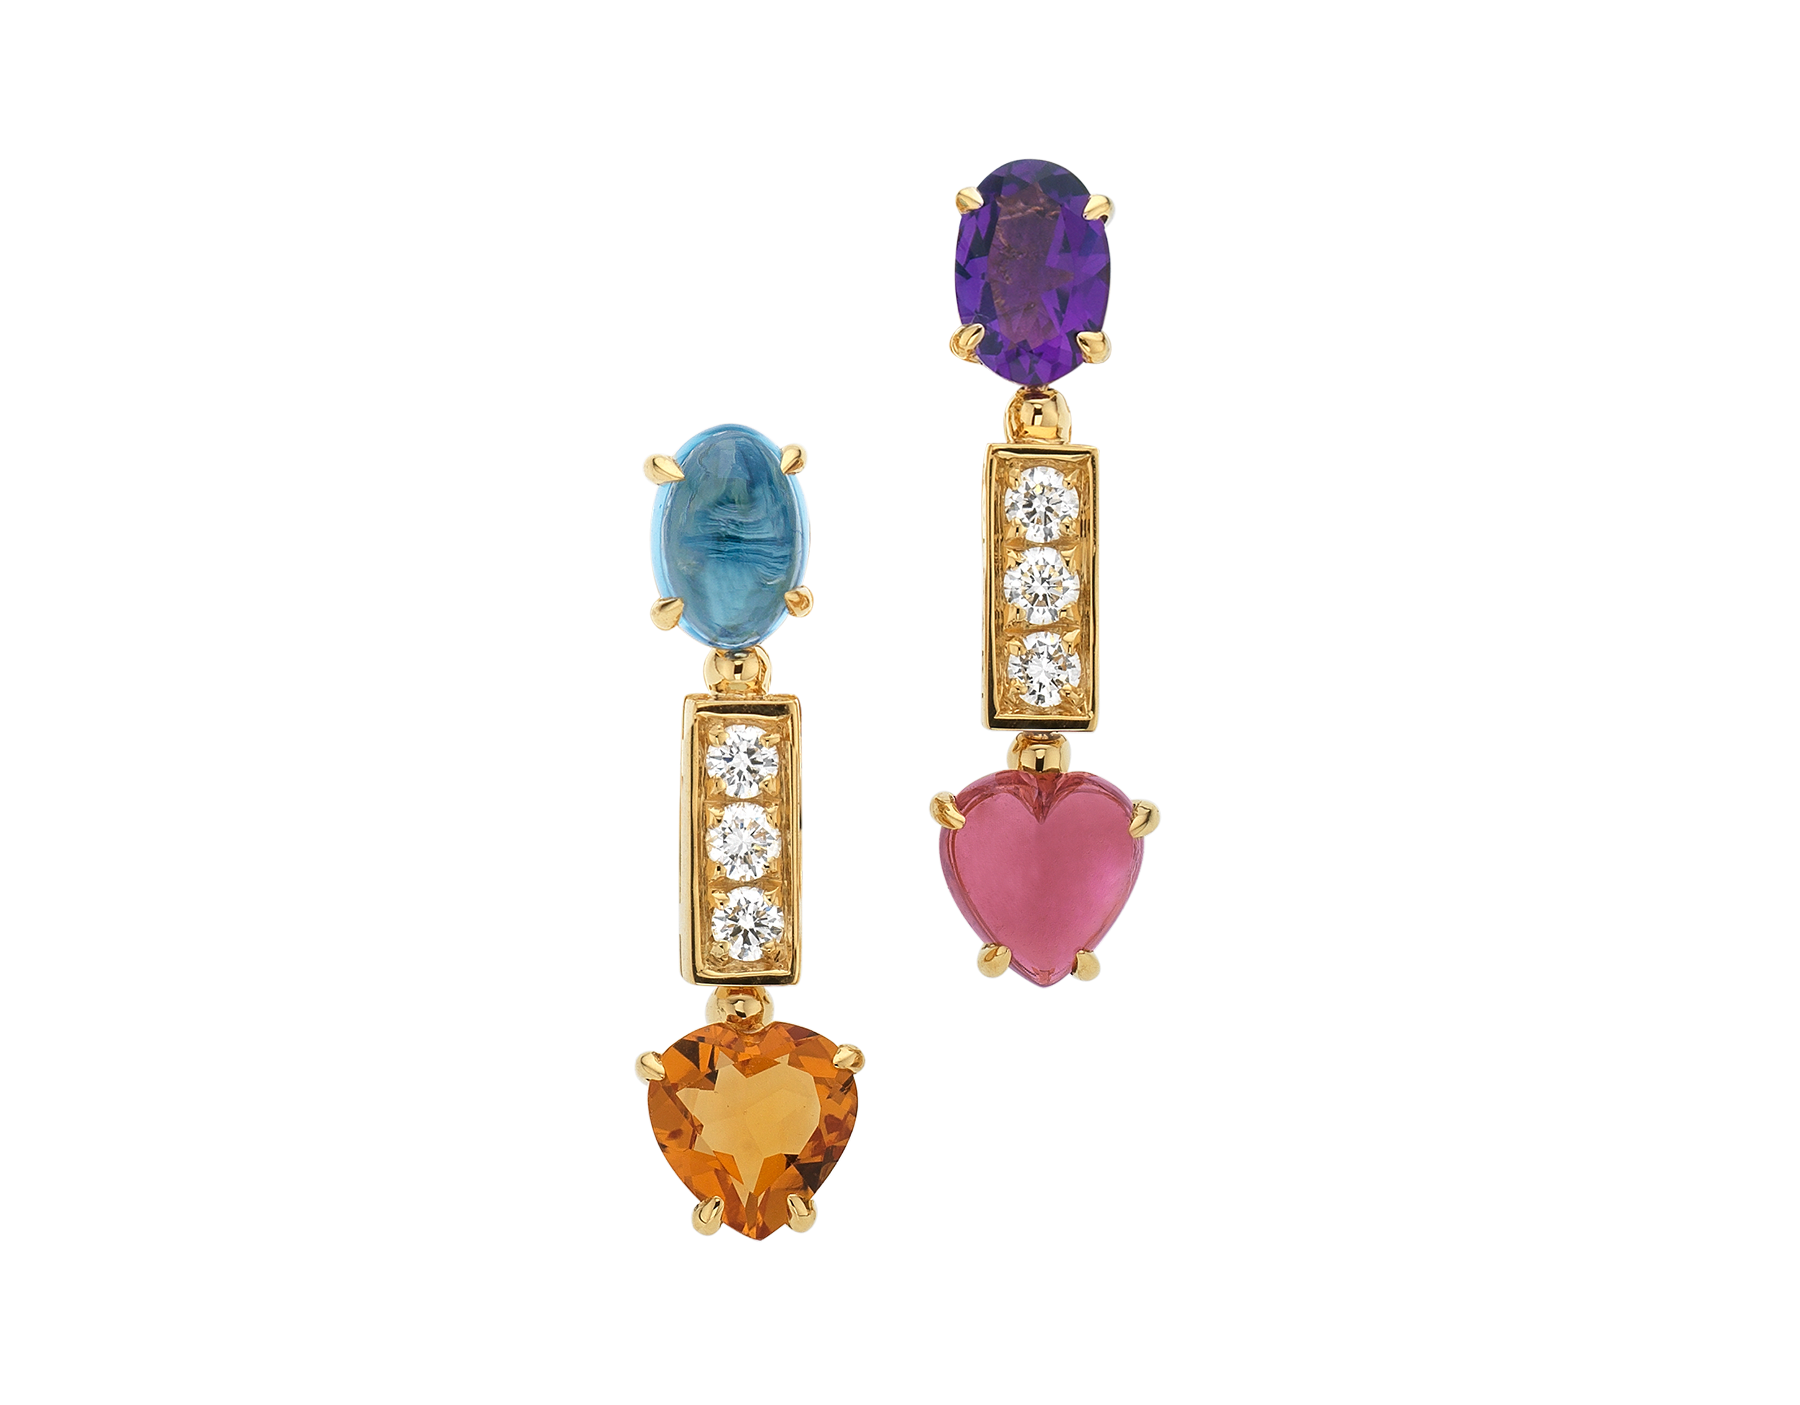 Allegra short 18 kt yellow gold pendant earrings set with pink tourmaline, amethyst, citrine quartz, blue topaz and pavé diamonds 334677 image 1